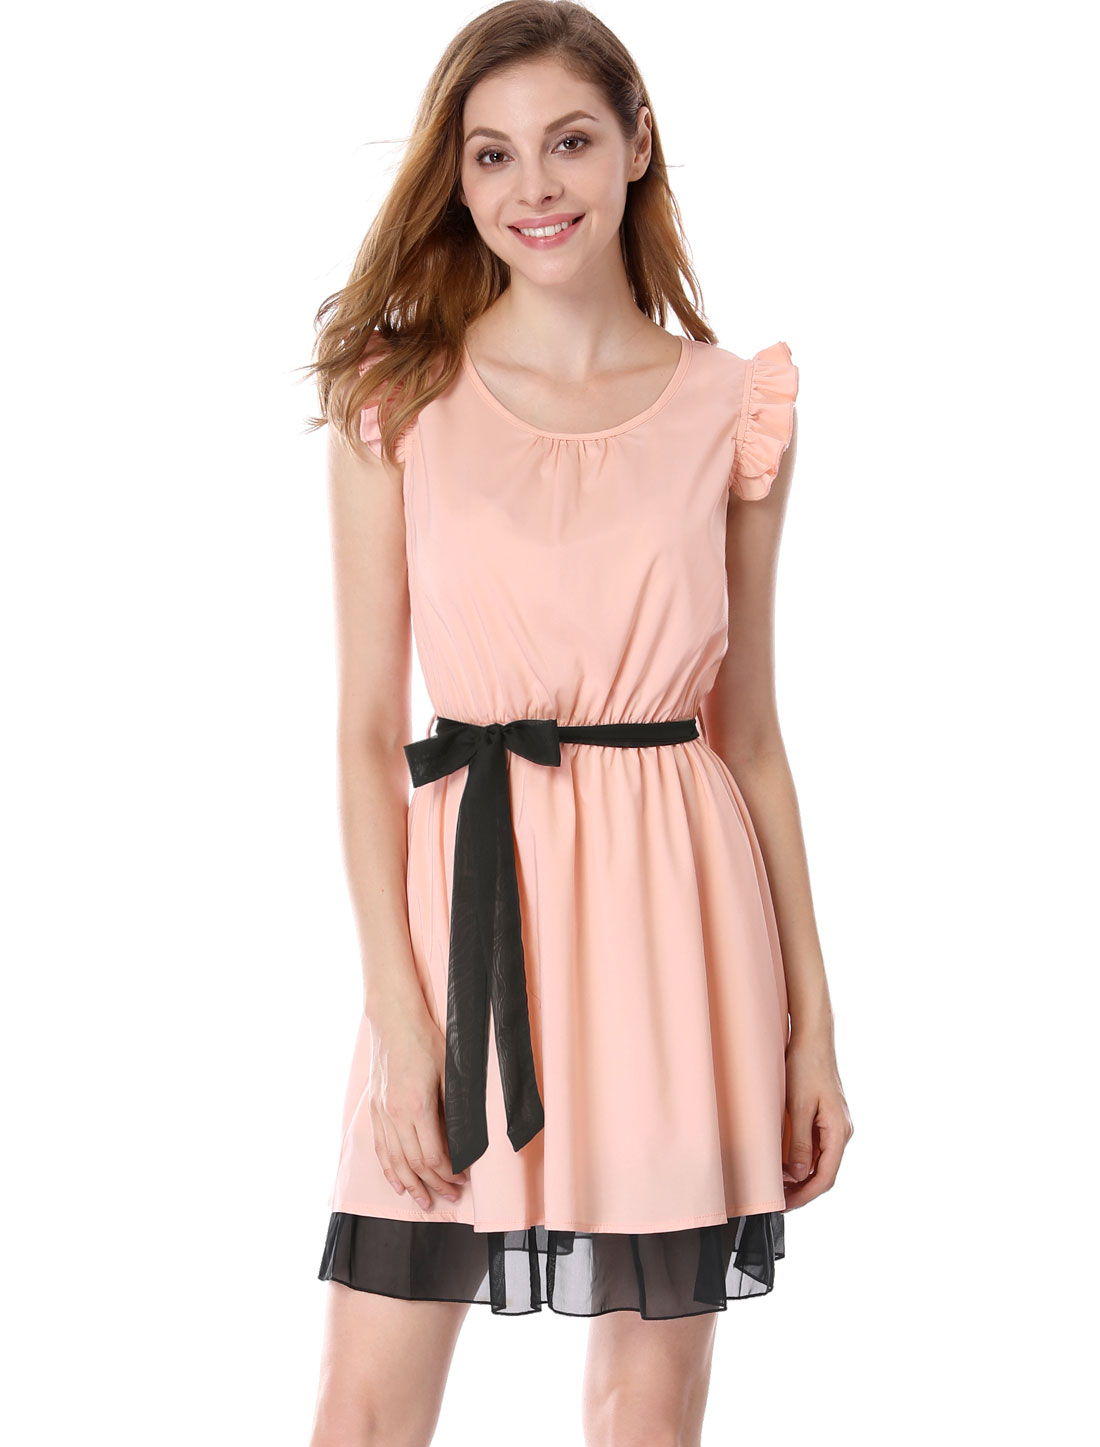 Stylish Black Splice Hem Pink Above Knee Dress for Lady XL